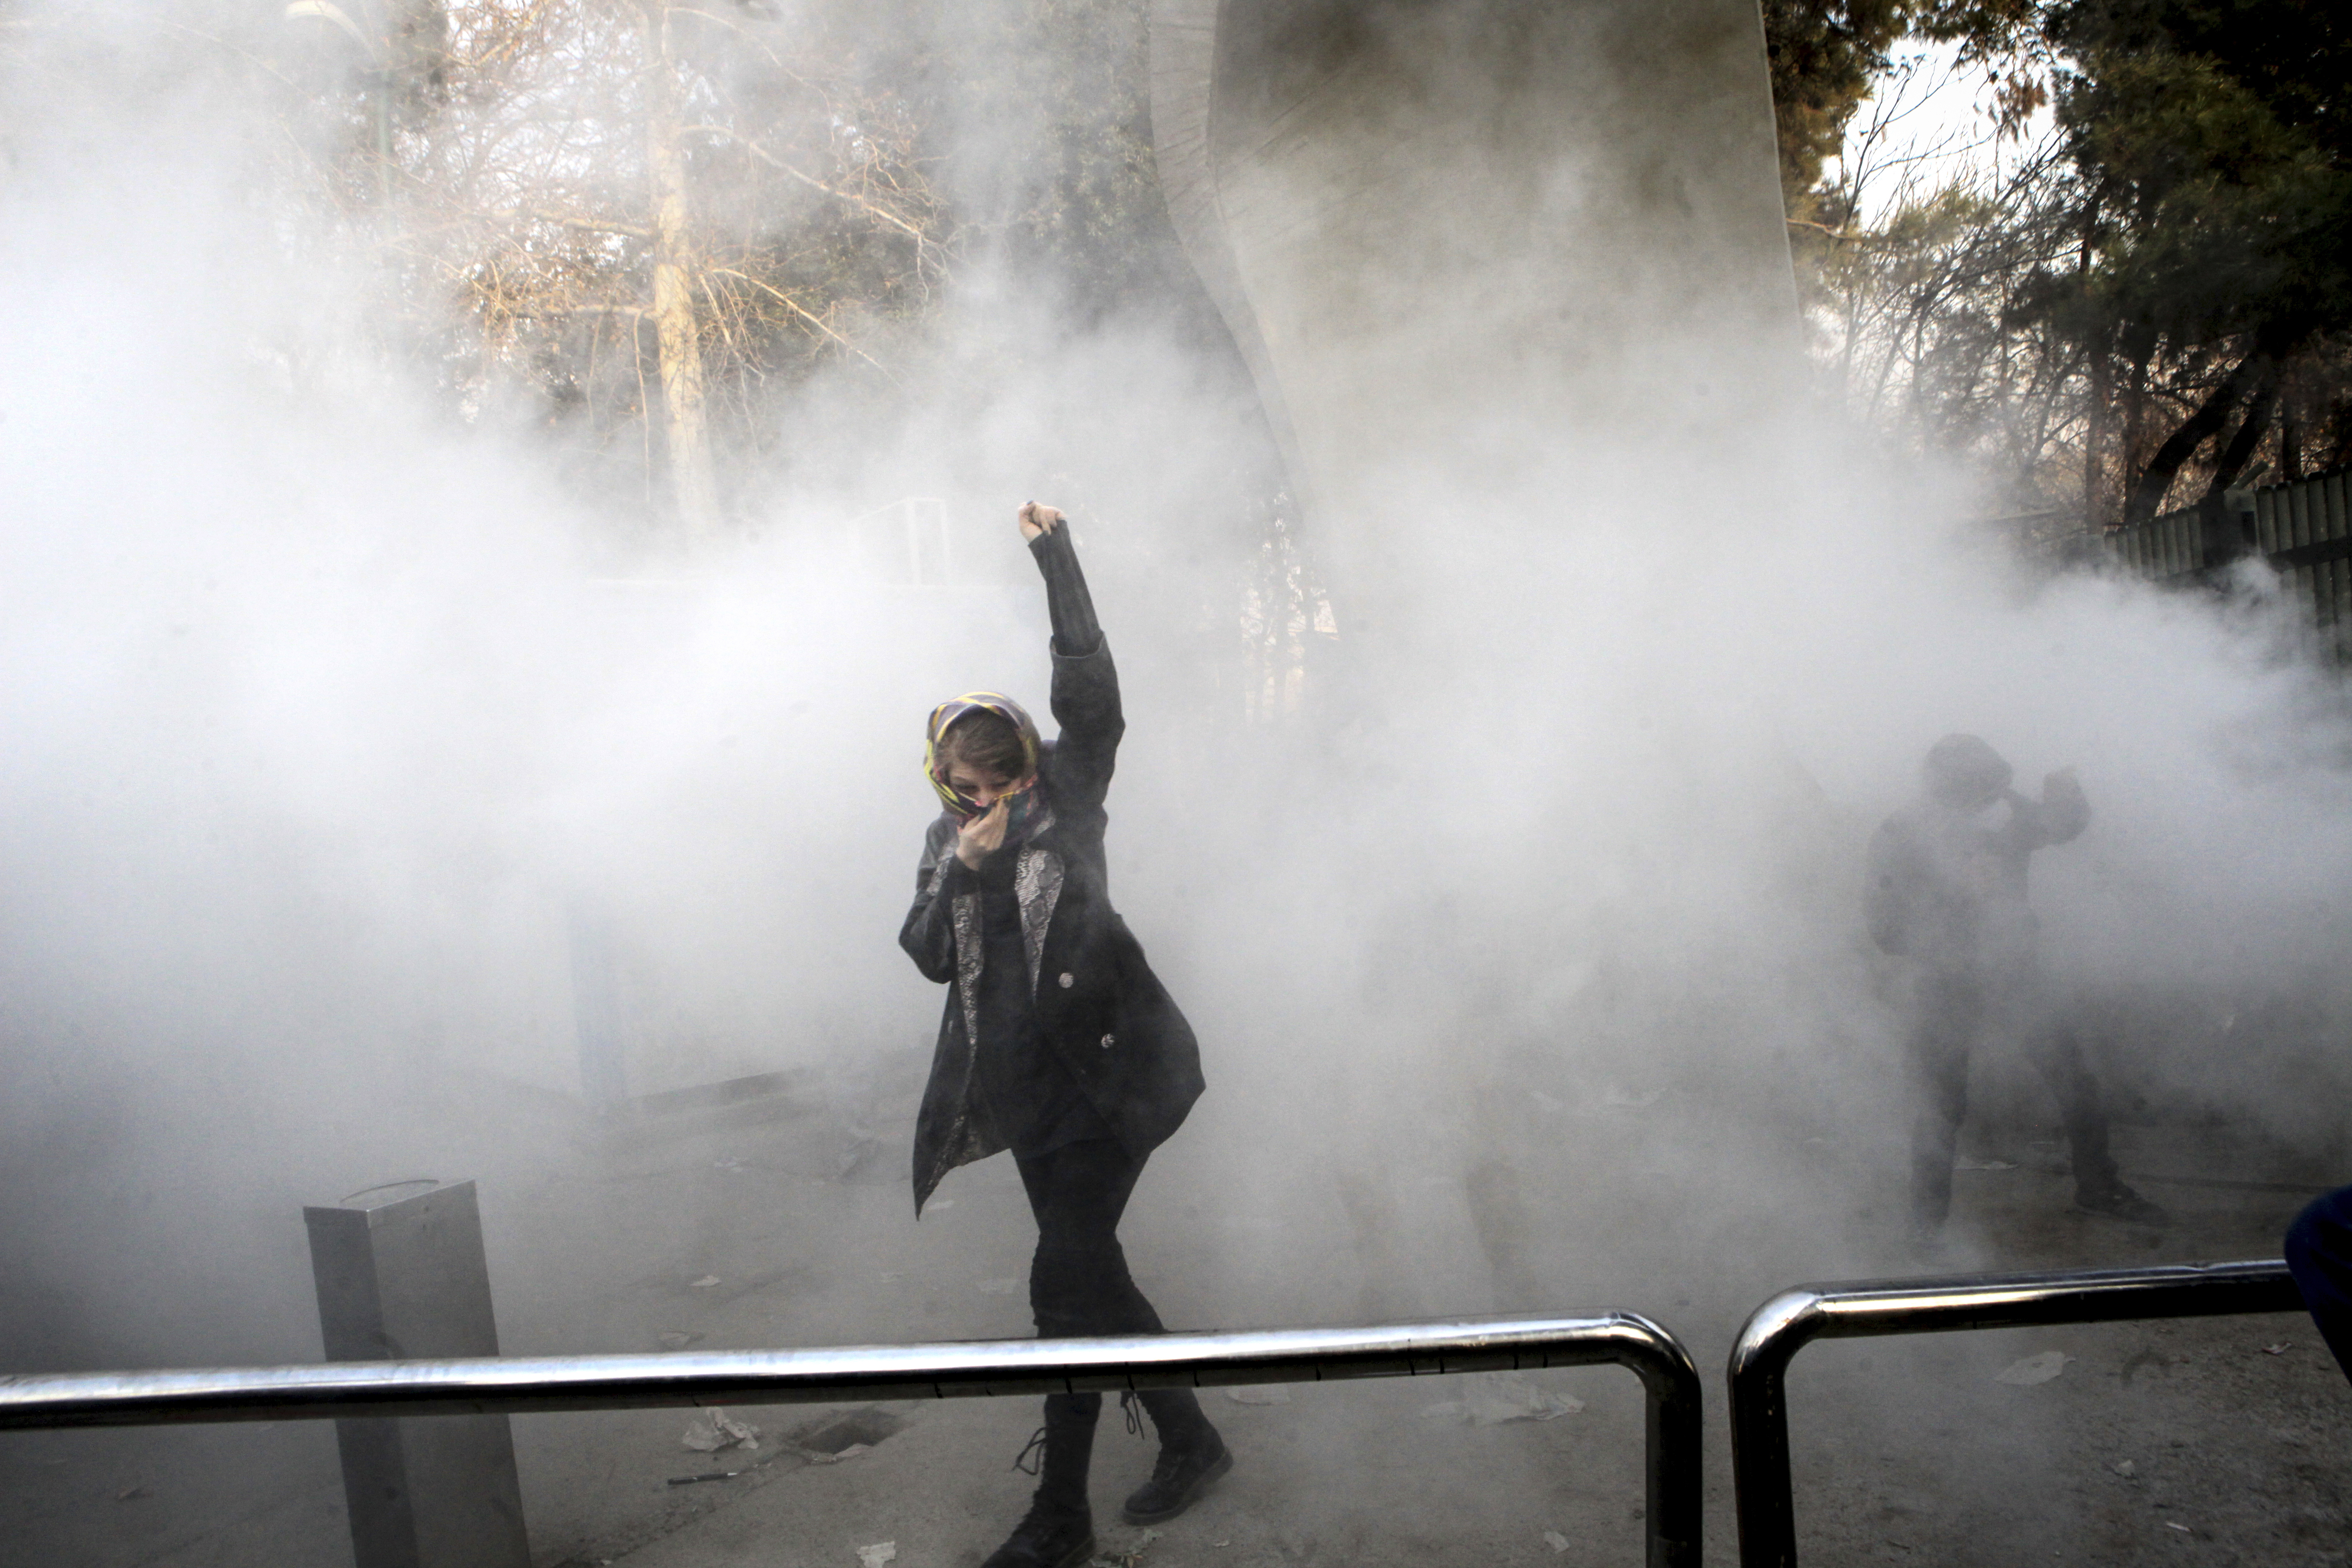 Iranian protest: 'Military adventurism' at the core of citizens outcry